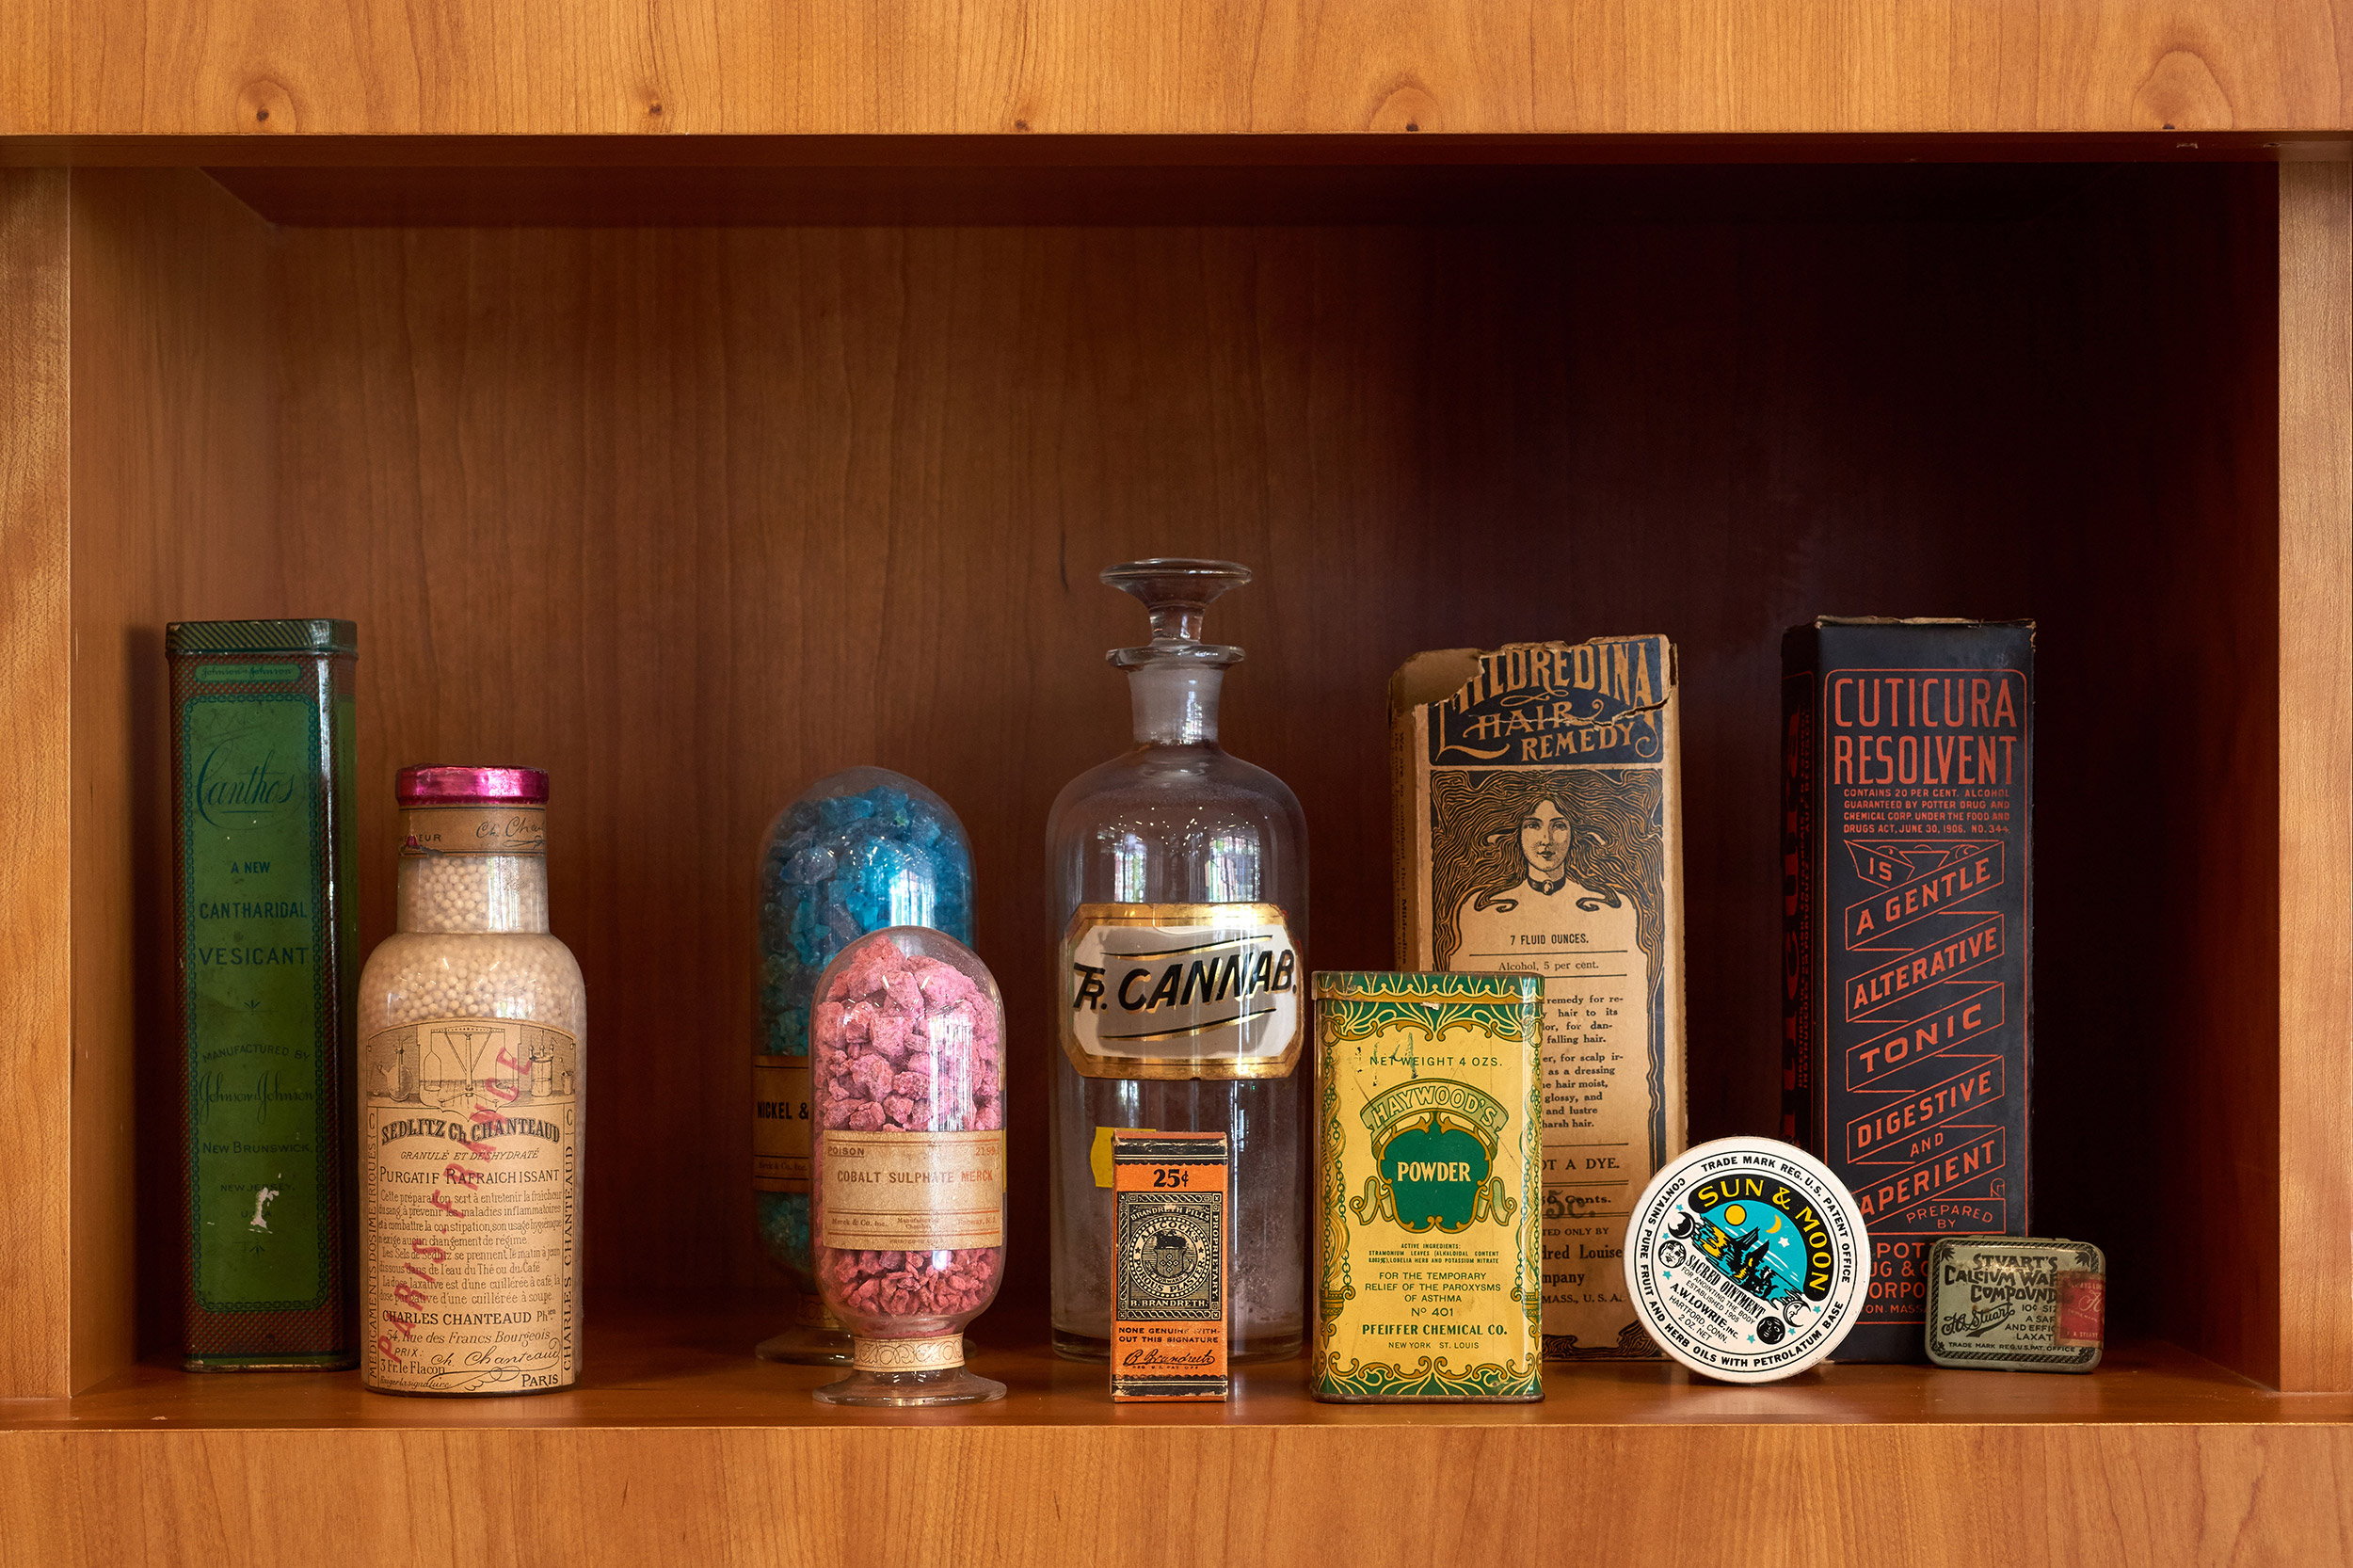 tintures and bottles sit inside a wooden cabinet